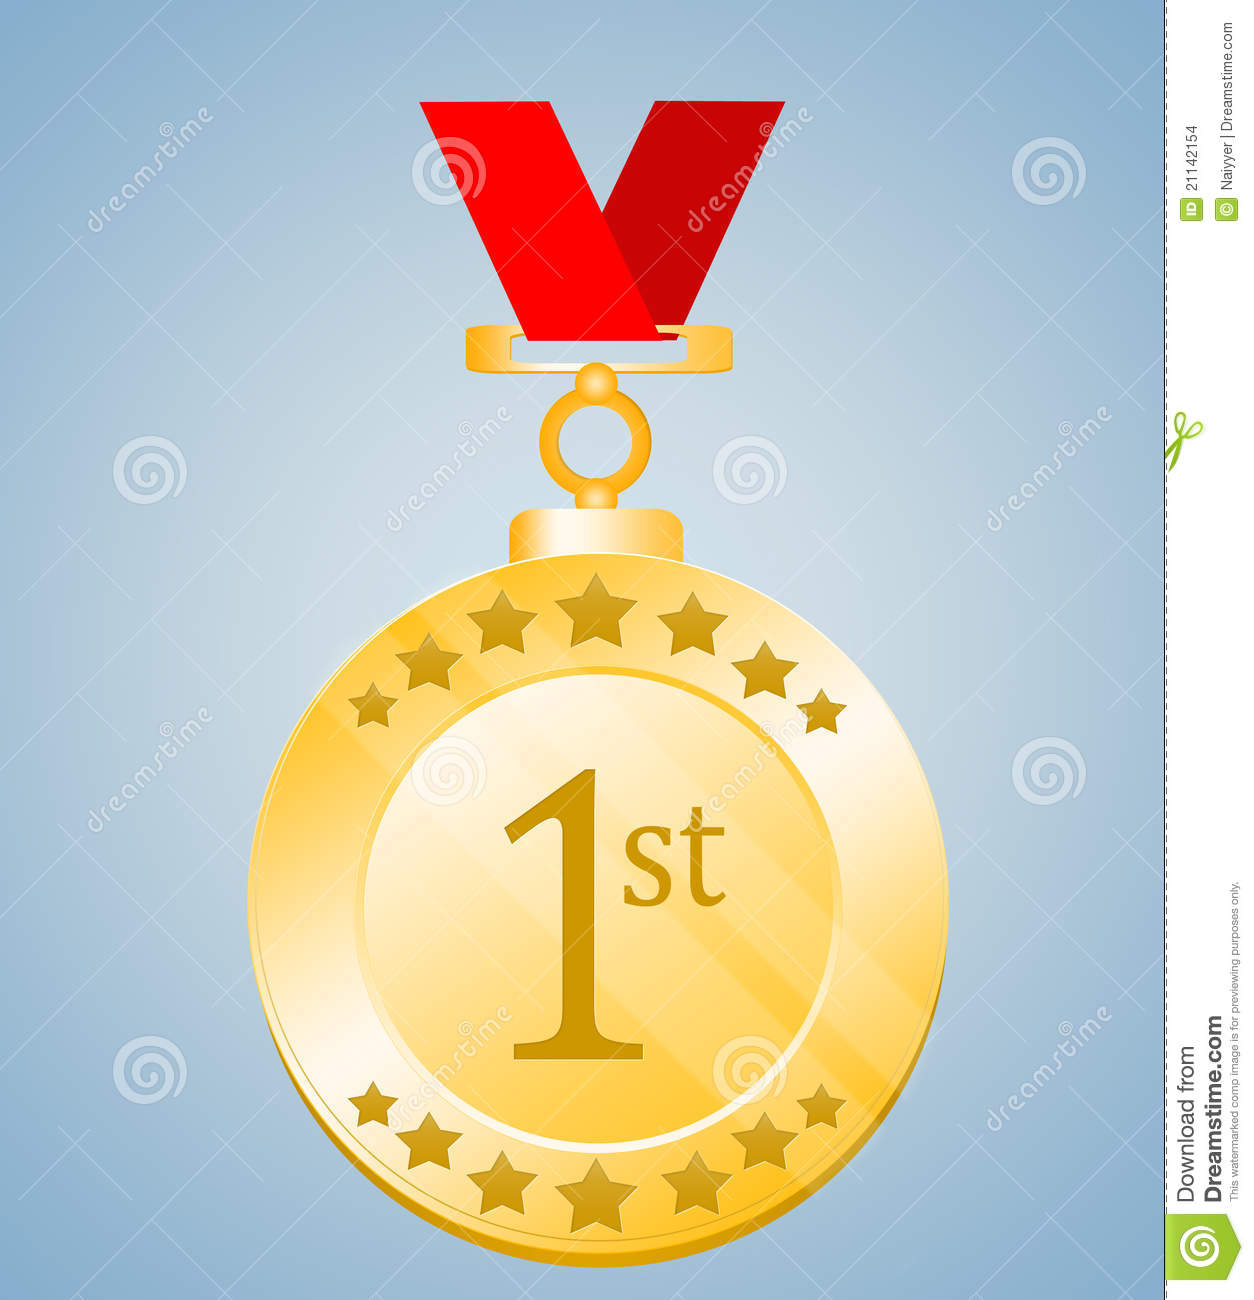 Stock Images 1st Position Medal Image21142154 on award ceremony background